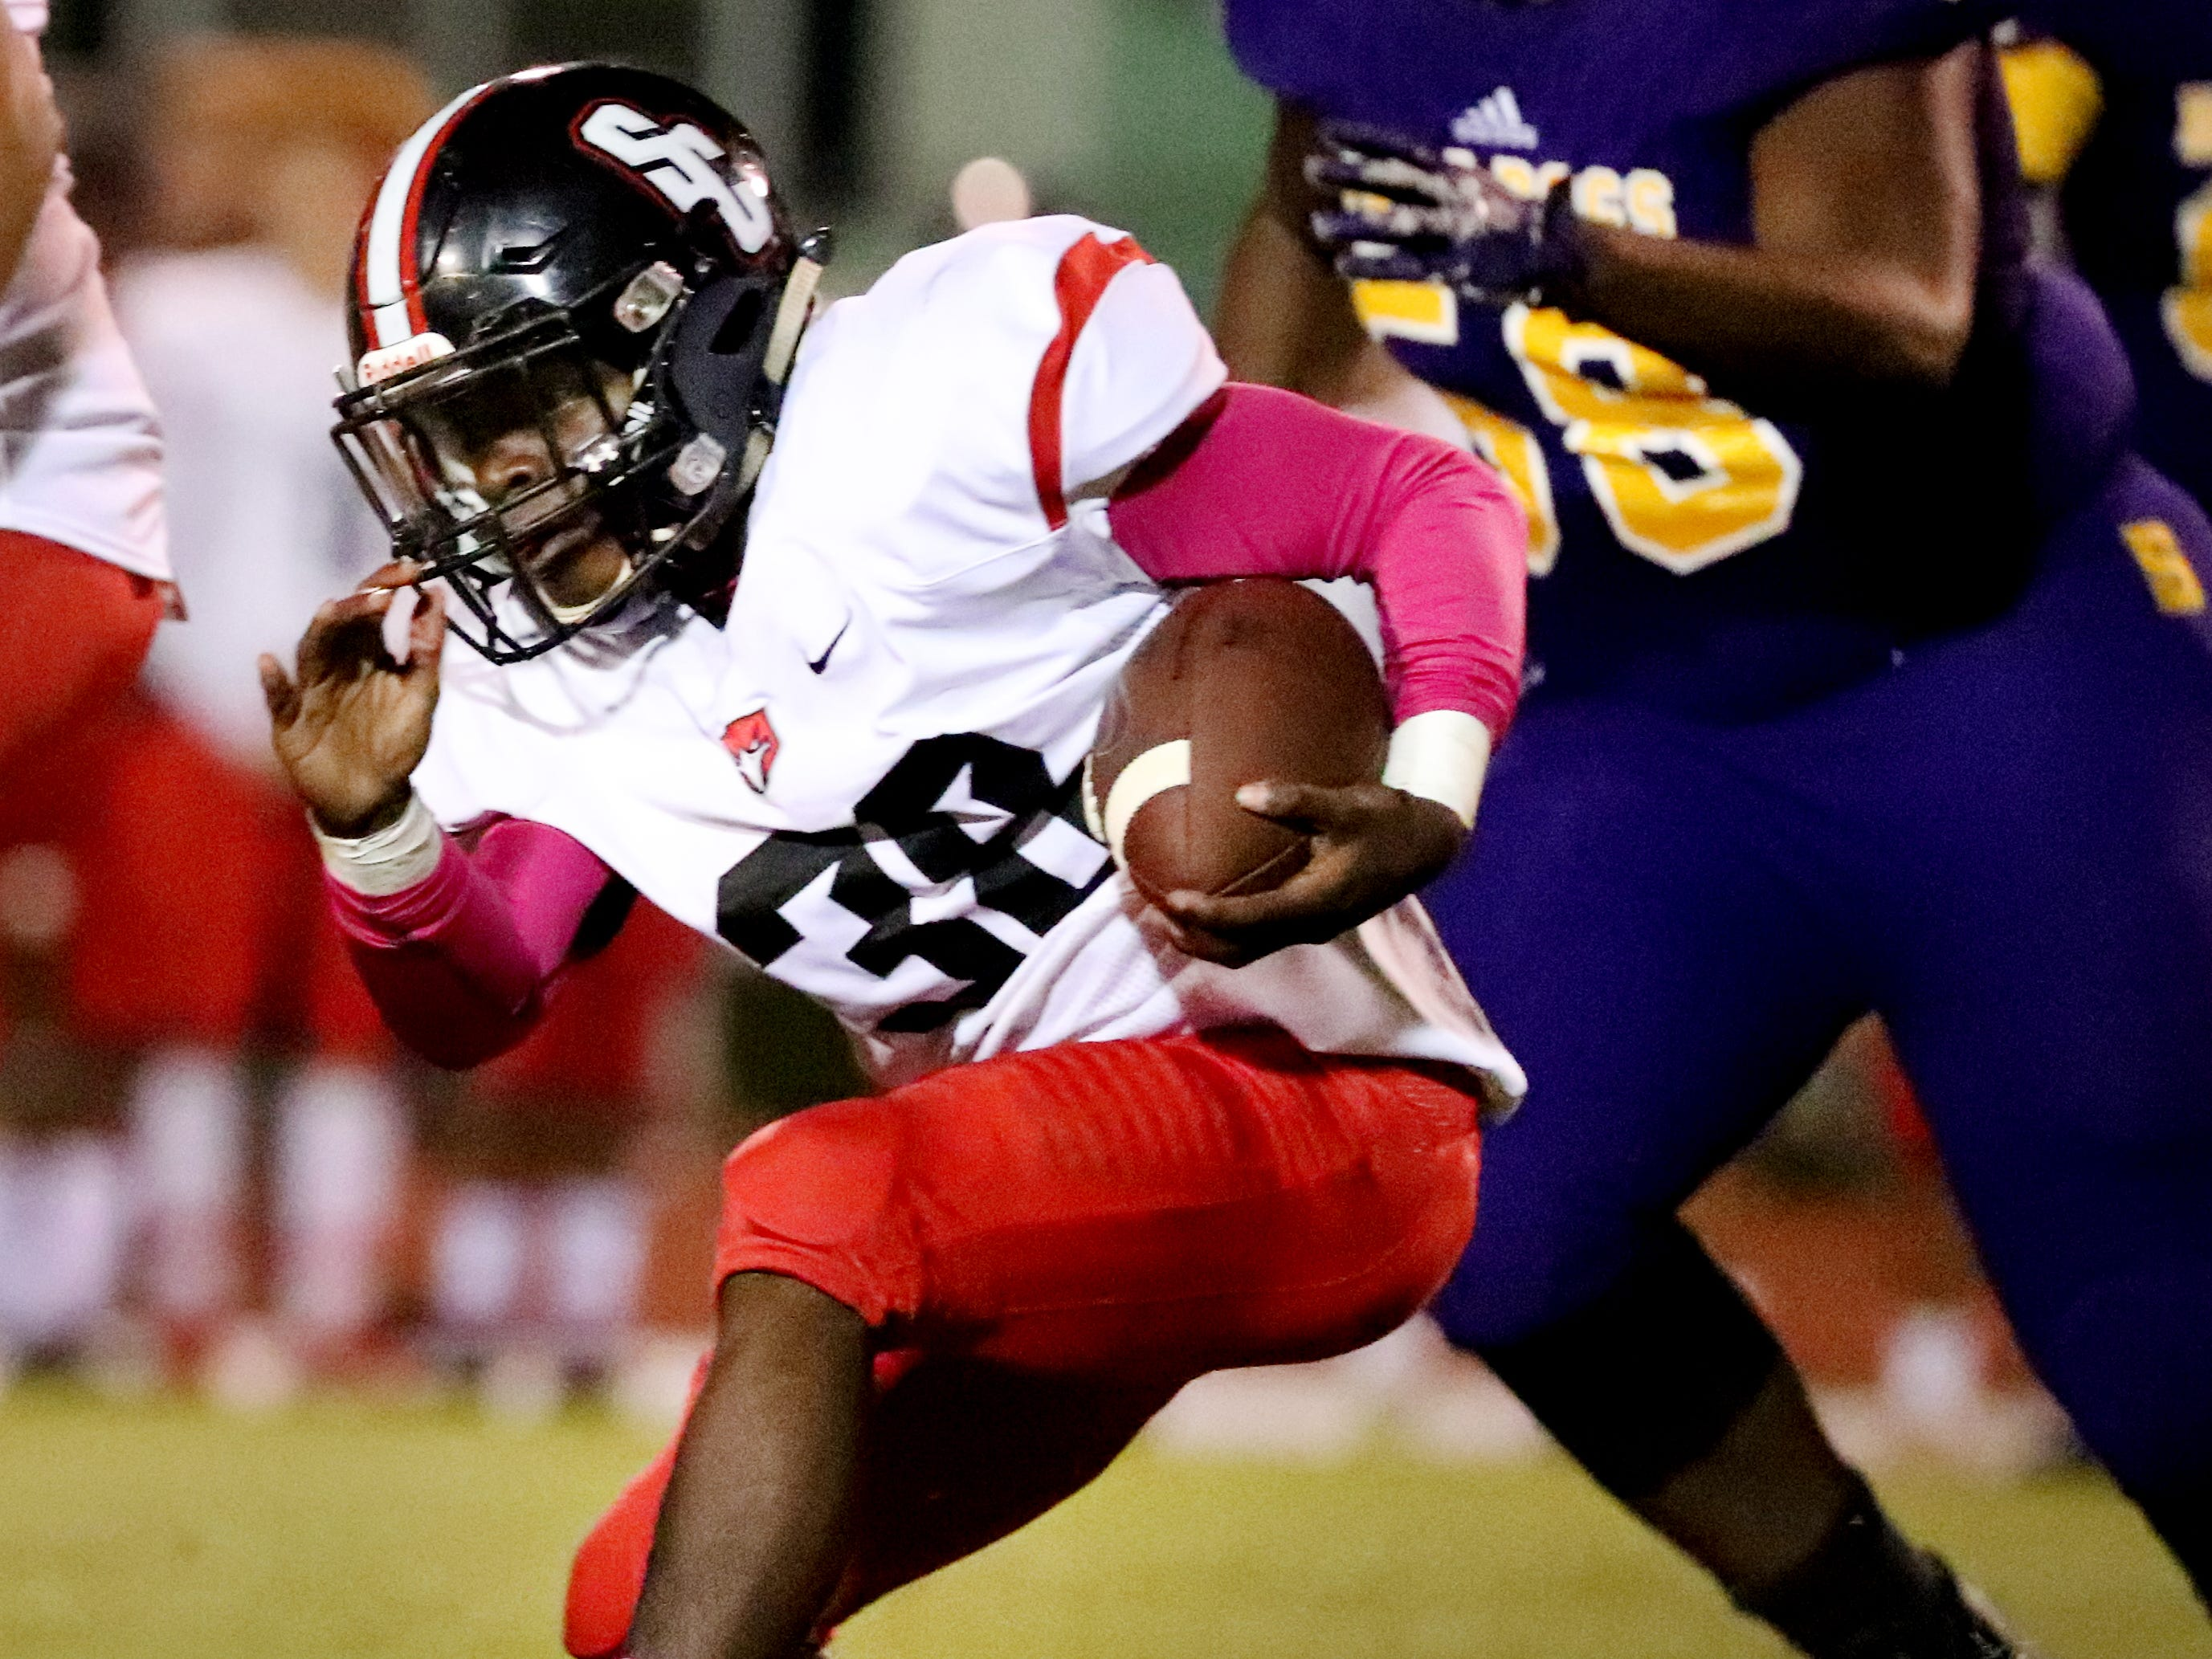 Stewarts Creek's Amari Jelks (38) runs the ball against Smyrna at Smyrna High School on Friday, Oct. 12, 2018.